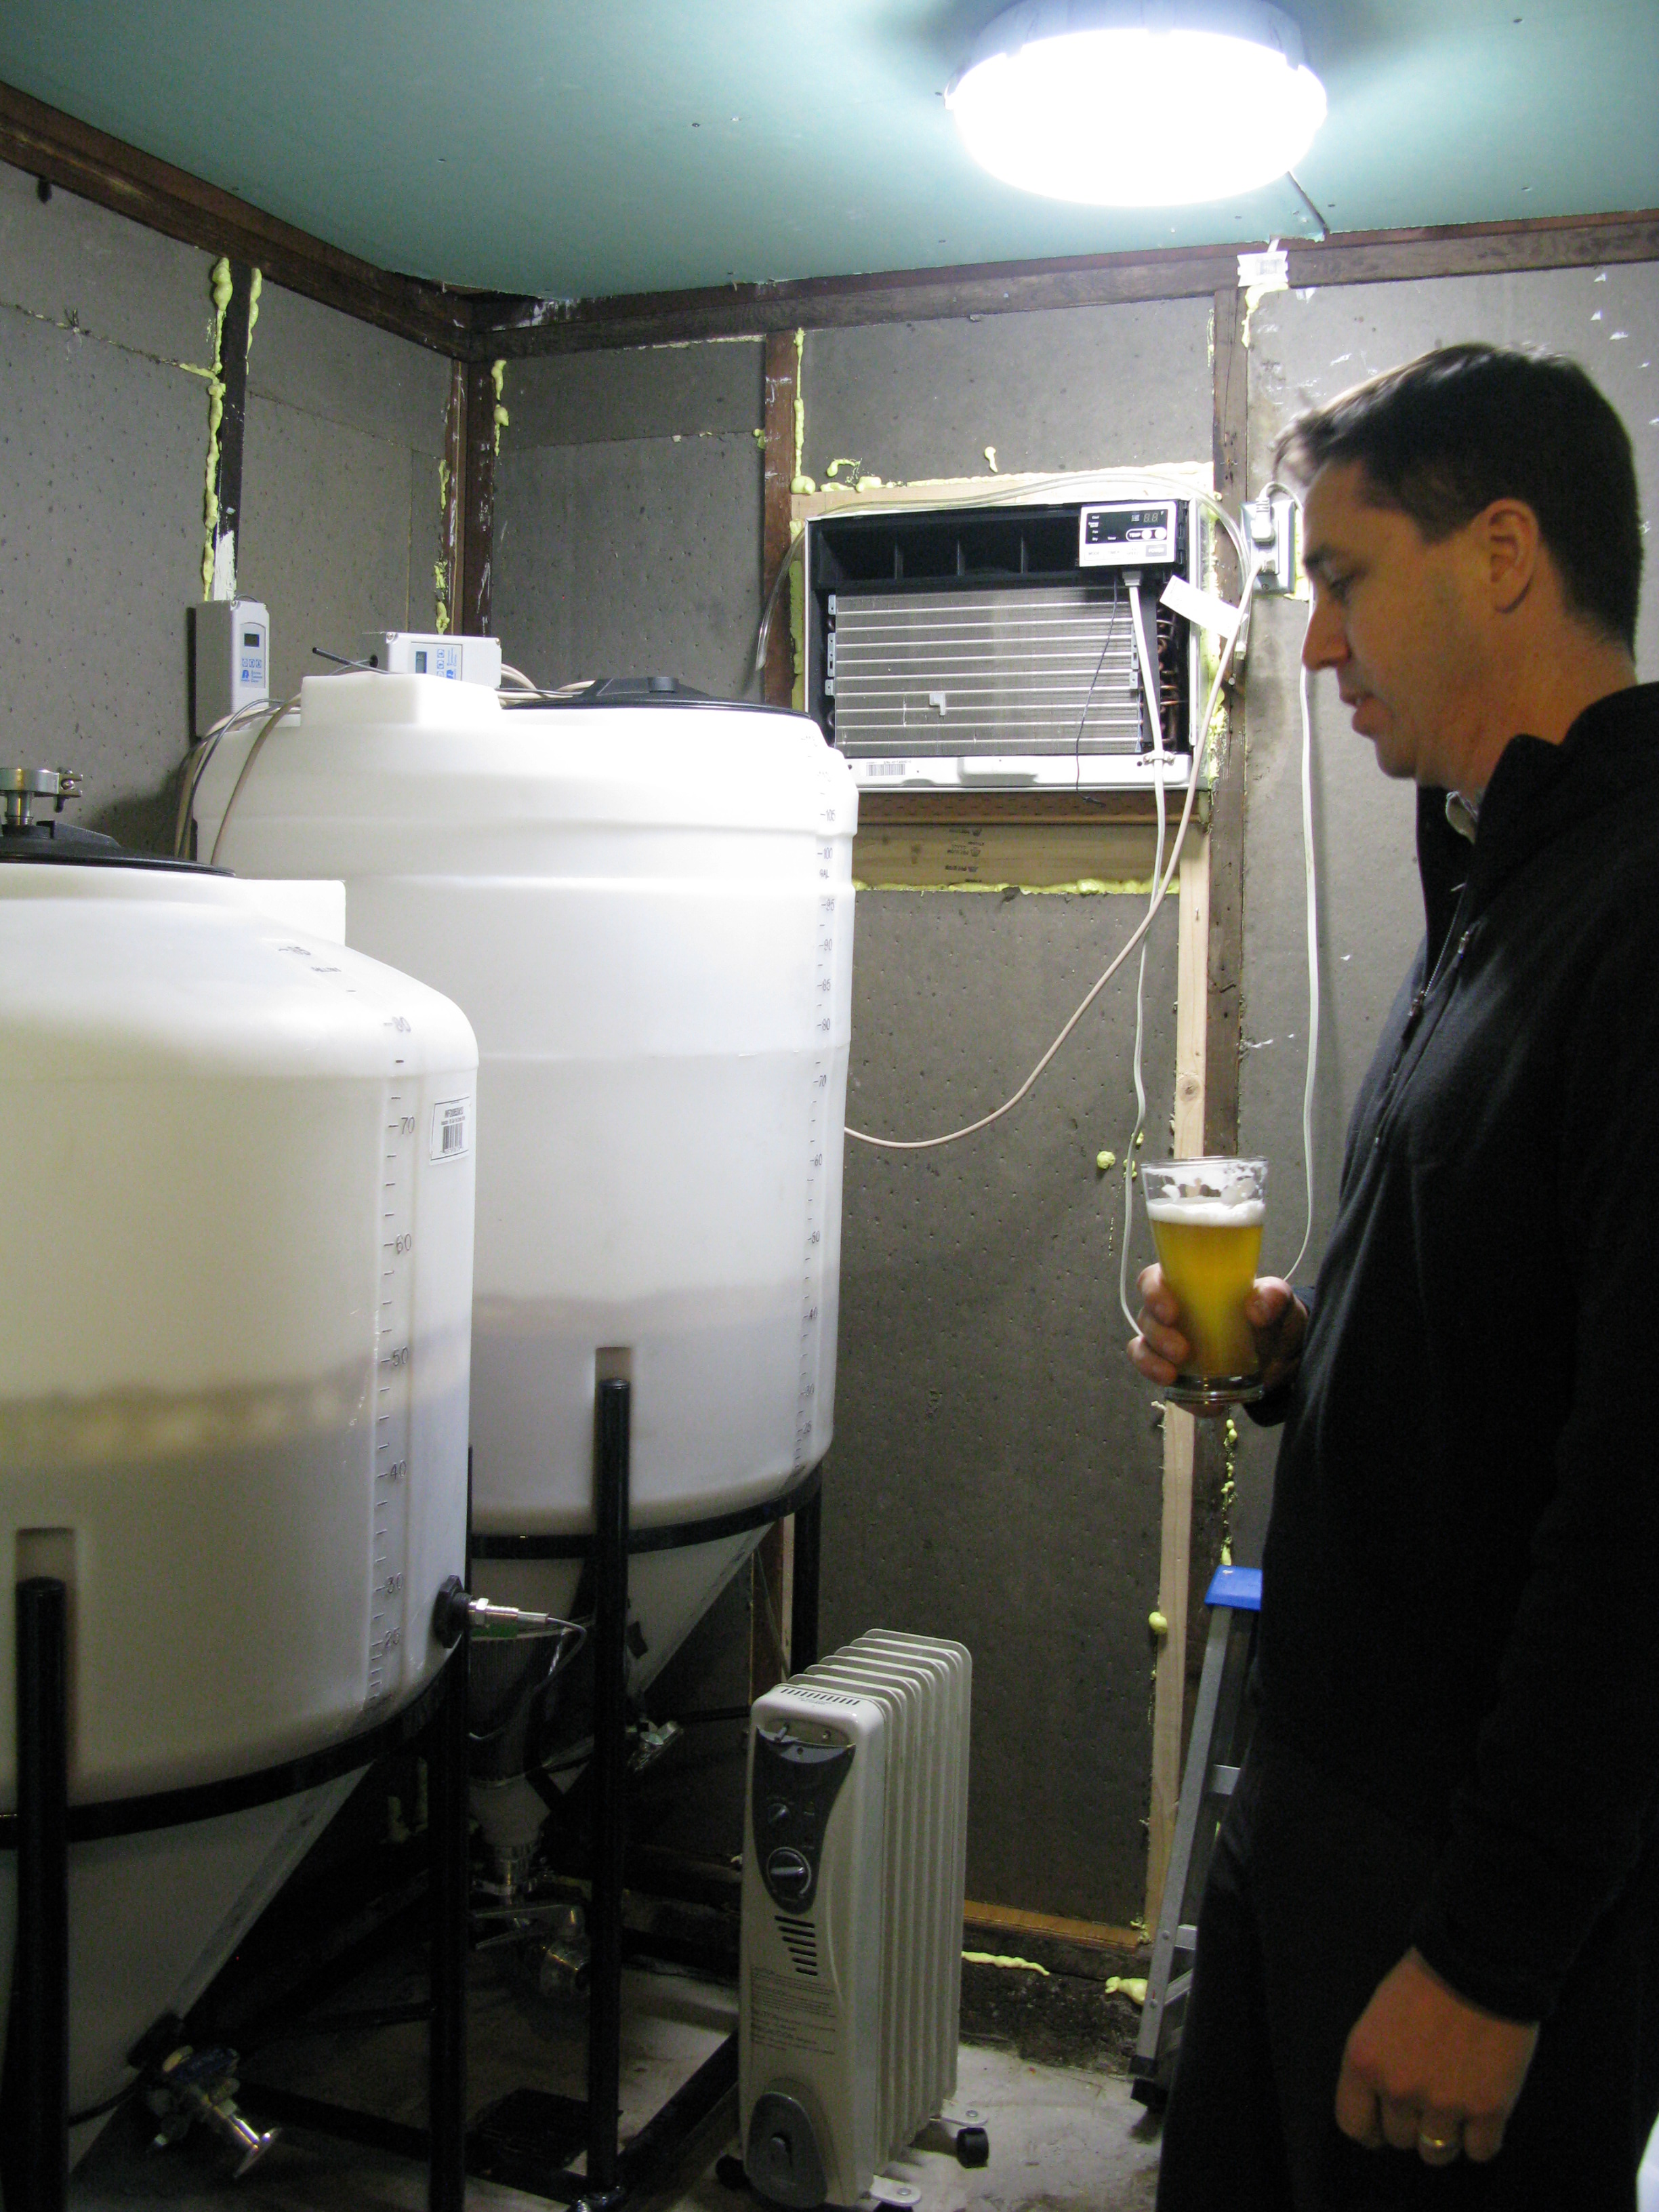 Mike Wright and his early fermenters at Beetje Brewing, now known as The Commons Brewery. (FoystonFoto)